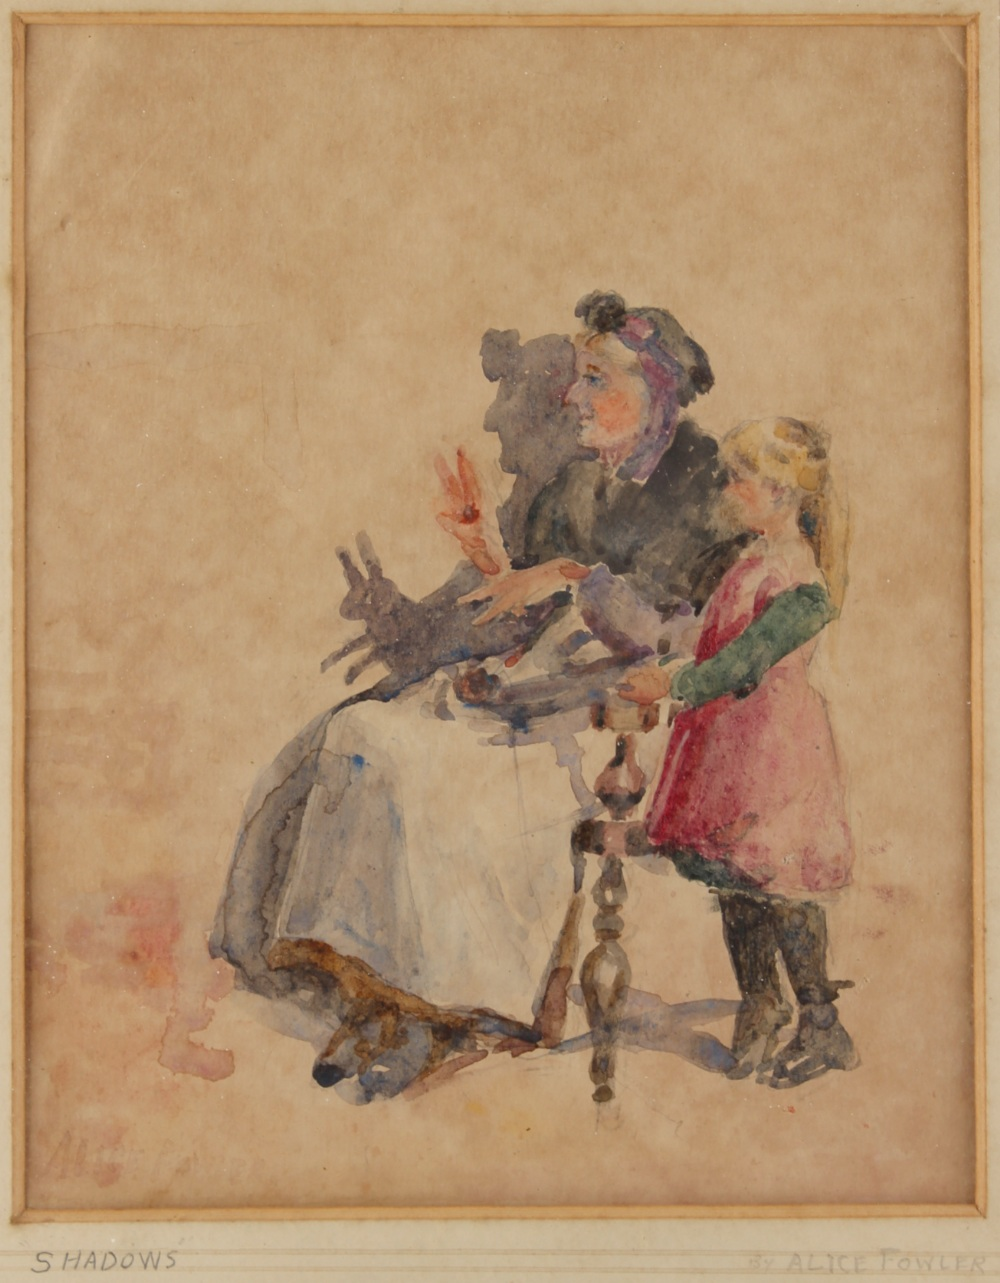 Lot 517 - Property of a gentleman - Alice Fowler (early 20th century) - 'SHADOWS' - watercolour, 9.85 by 7.